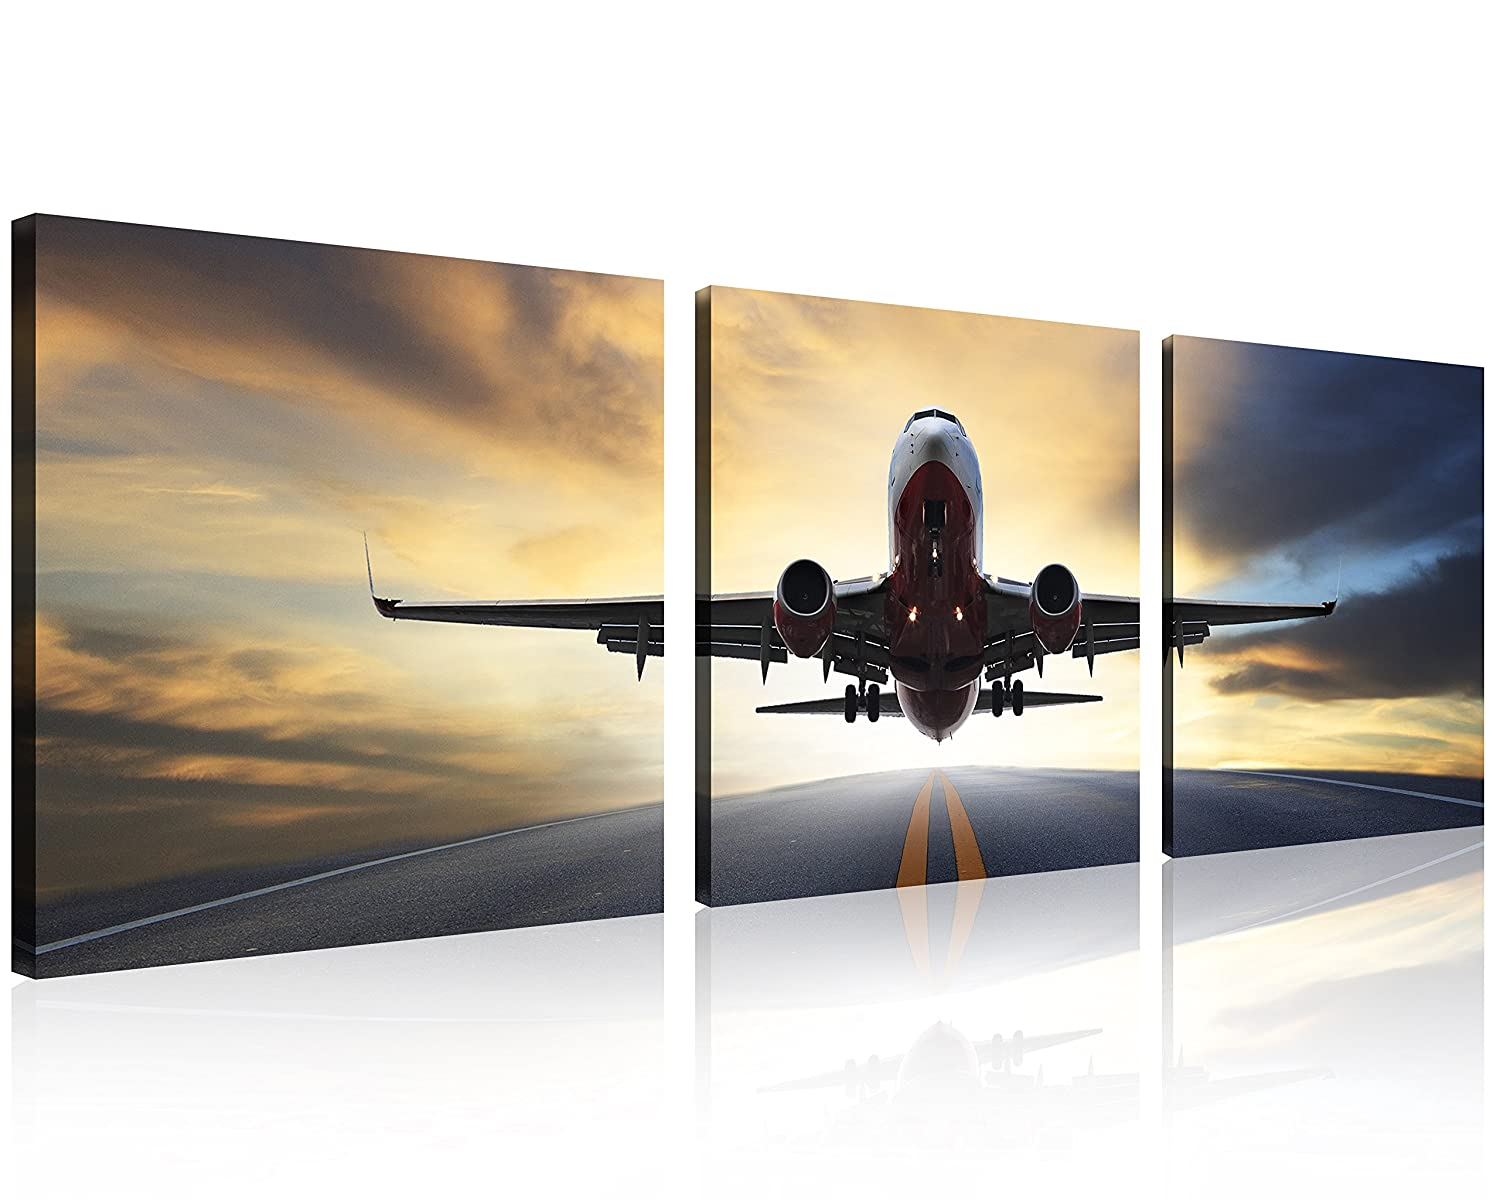 Amazon.com: QICAI Vintage Airplane Wall Art Vintage Airplane Decor ...